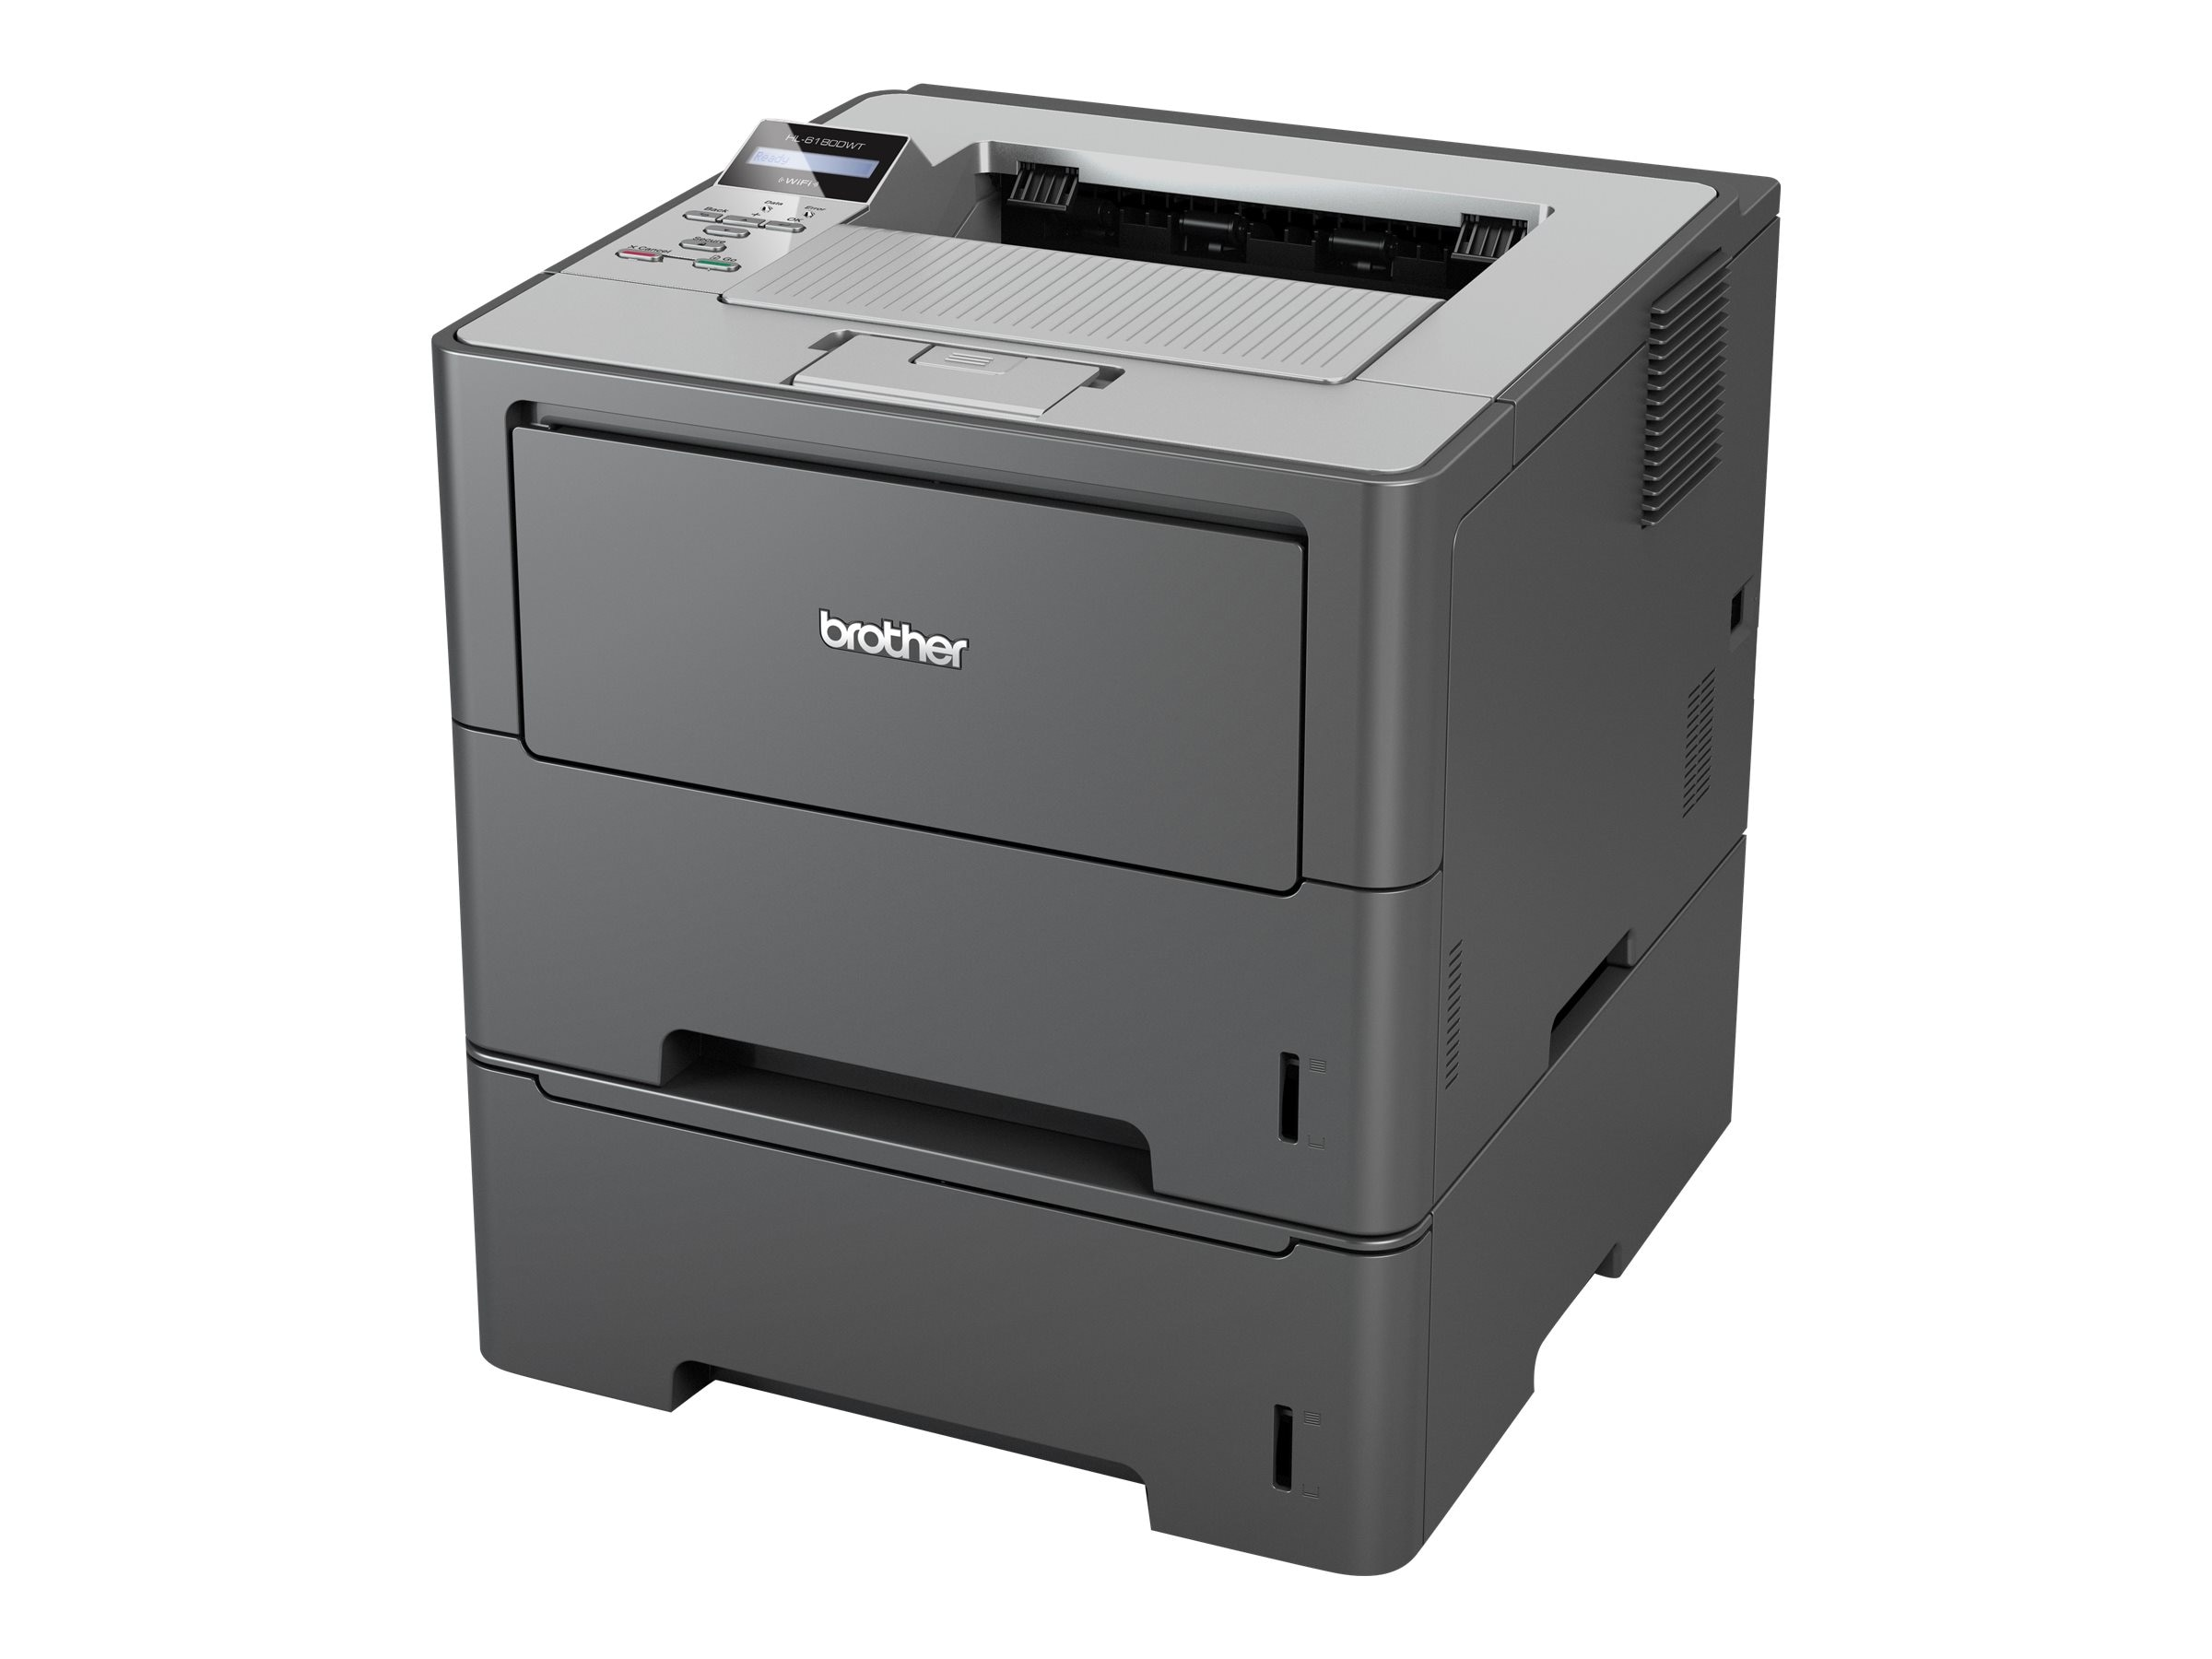 Brother HL-6180DWT Laser Printer, HL-6180DWT, 14417481, Printers - Laser & LED (monochrome)